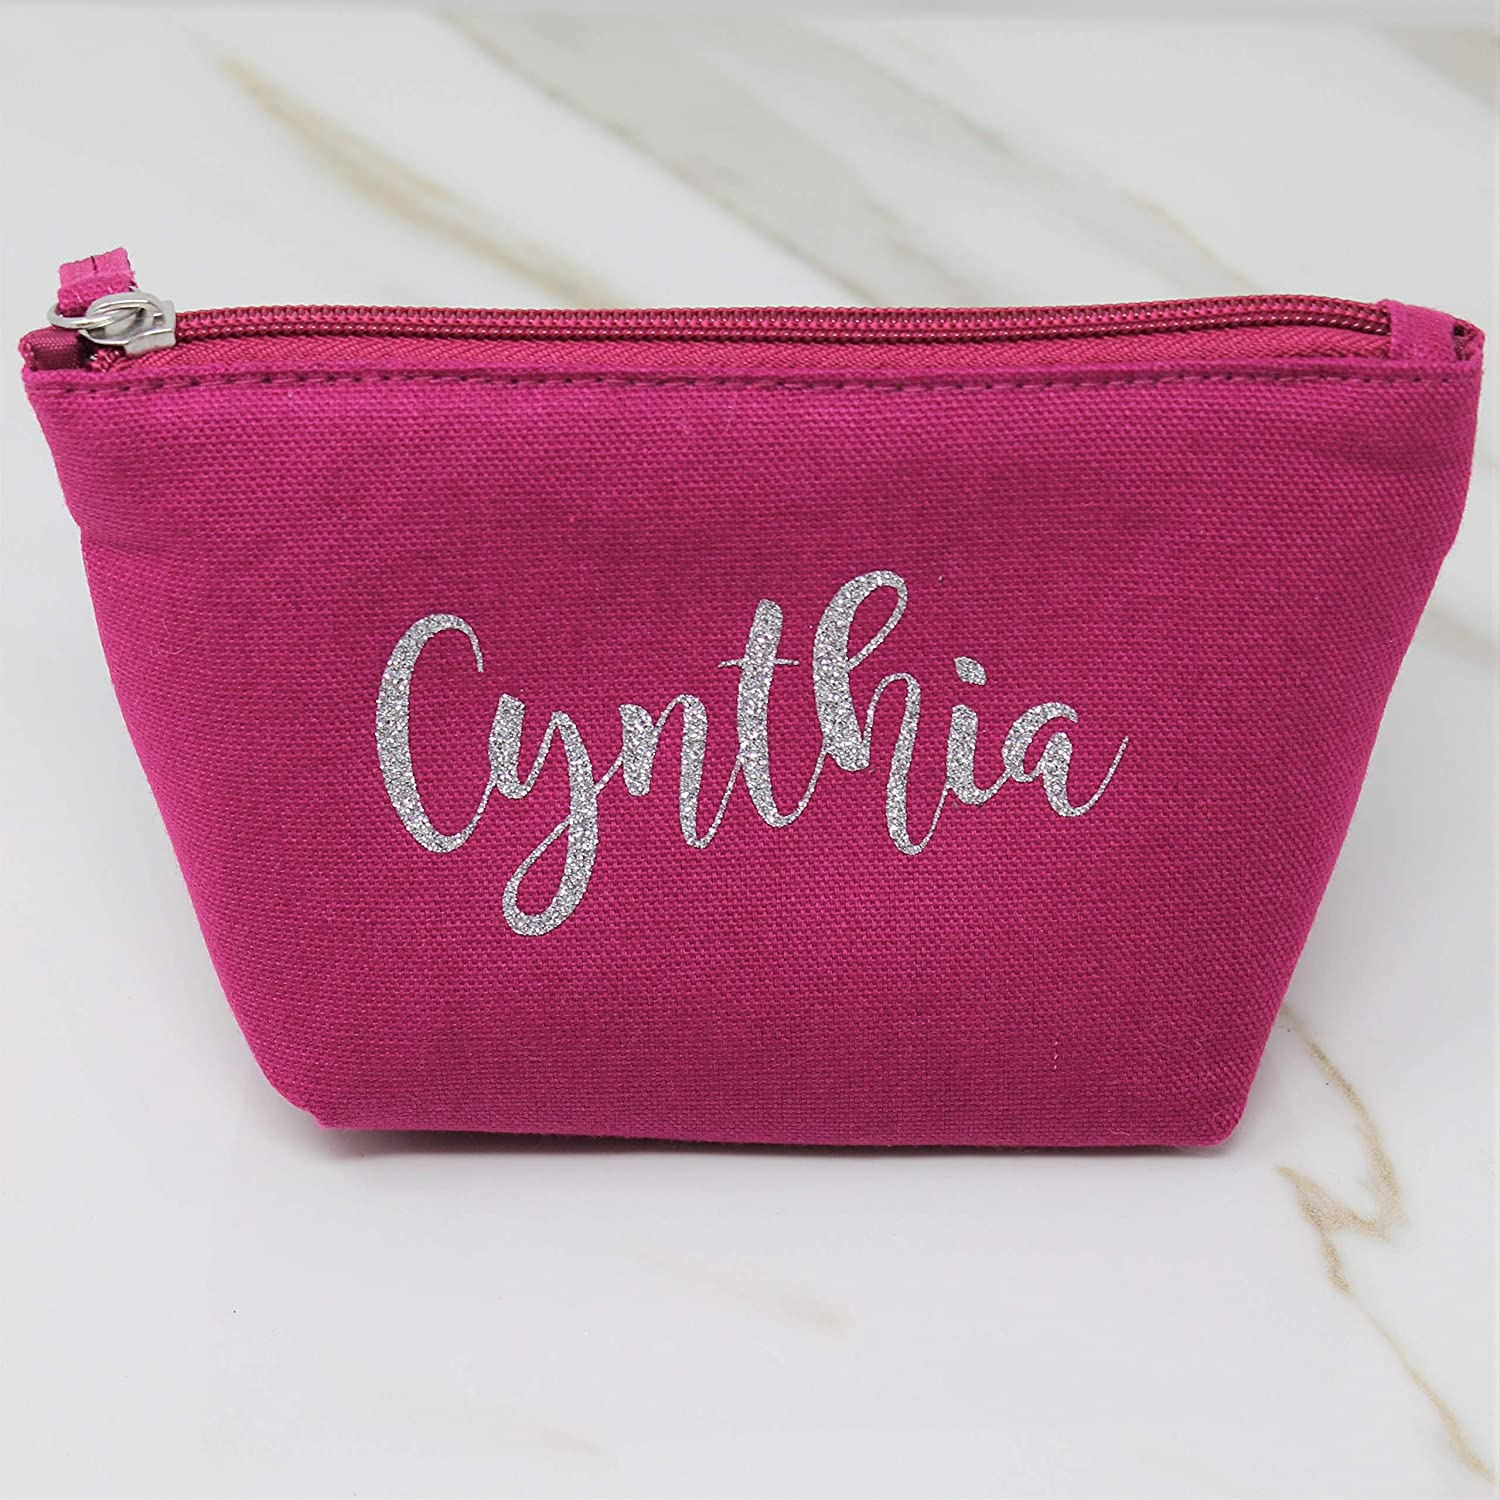 Personalized Pink Makeup Bag for Women Small Cosmetic Zipper Pouch